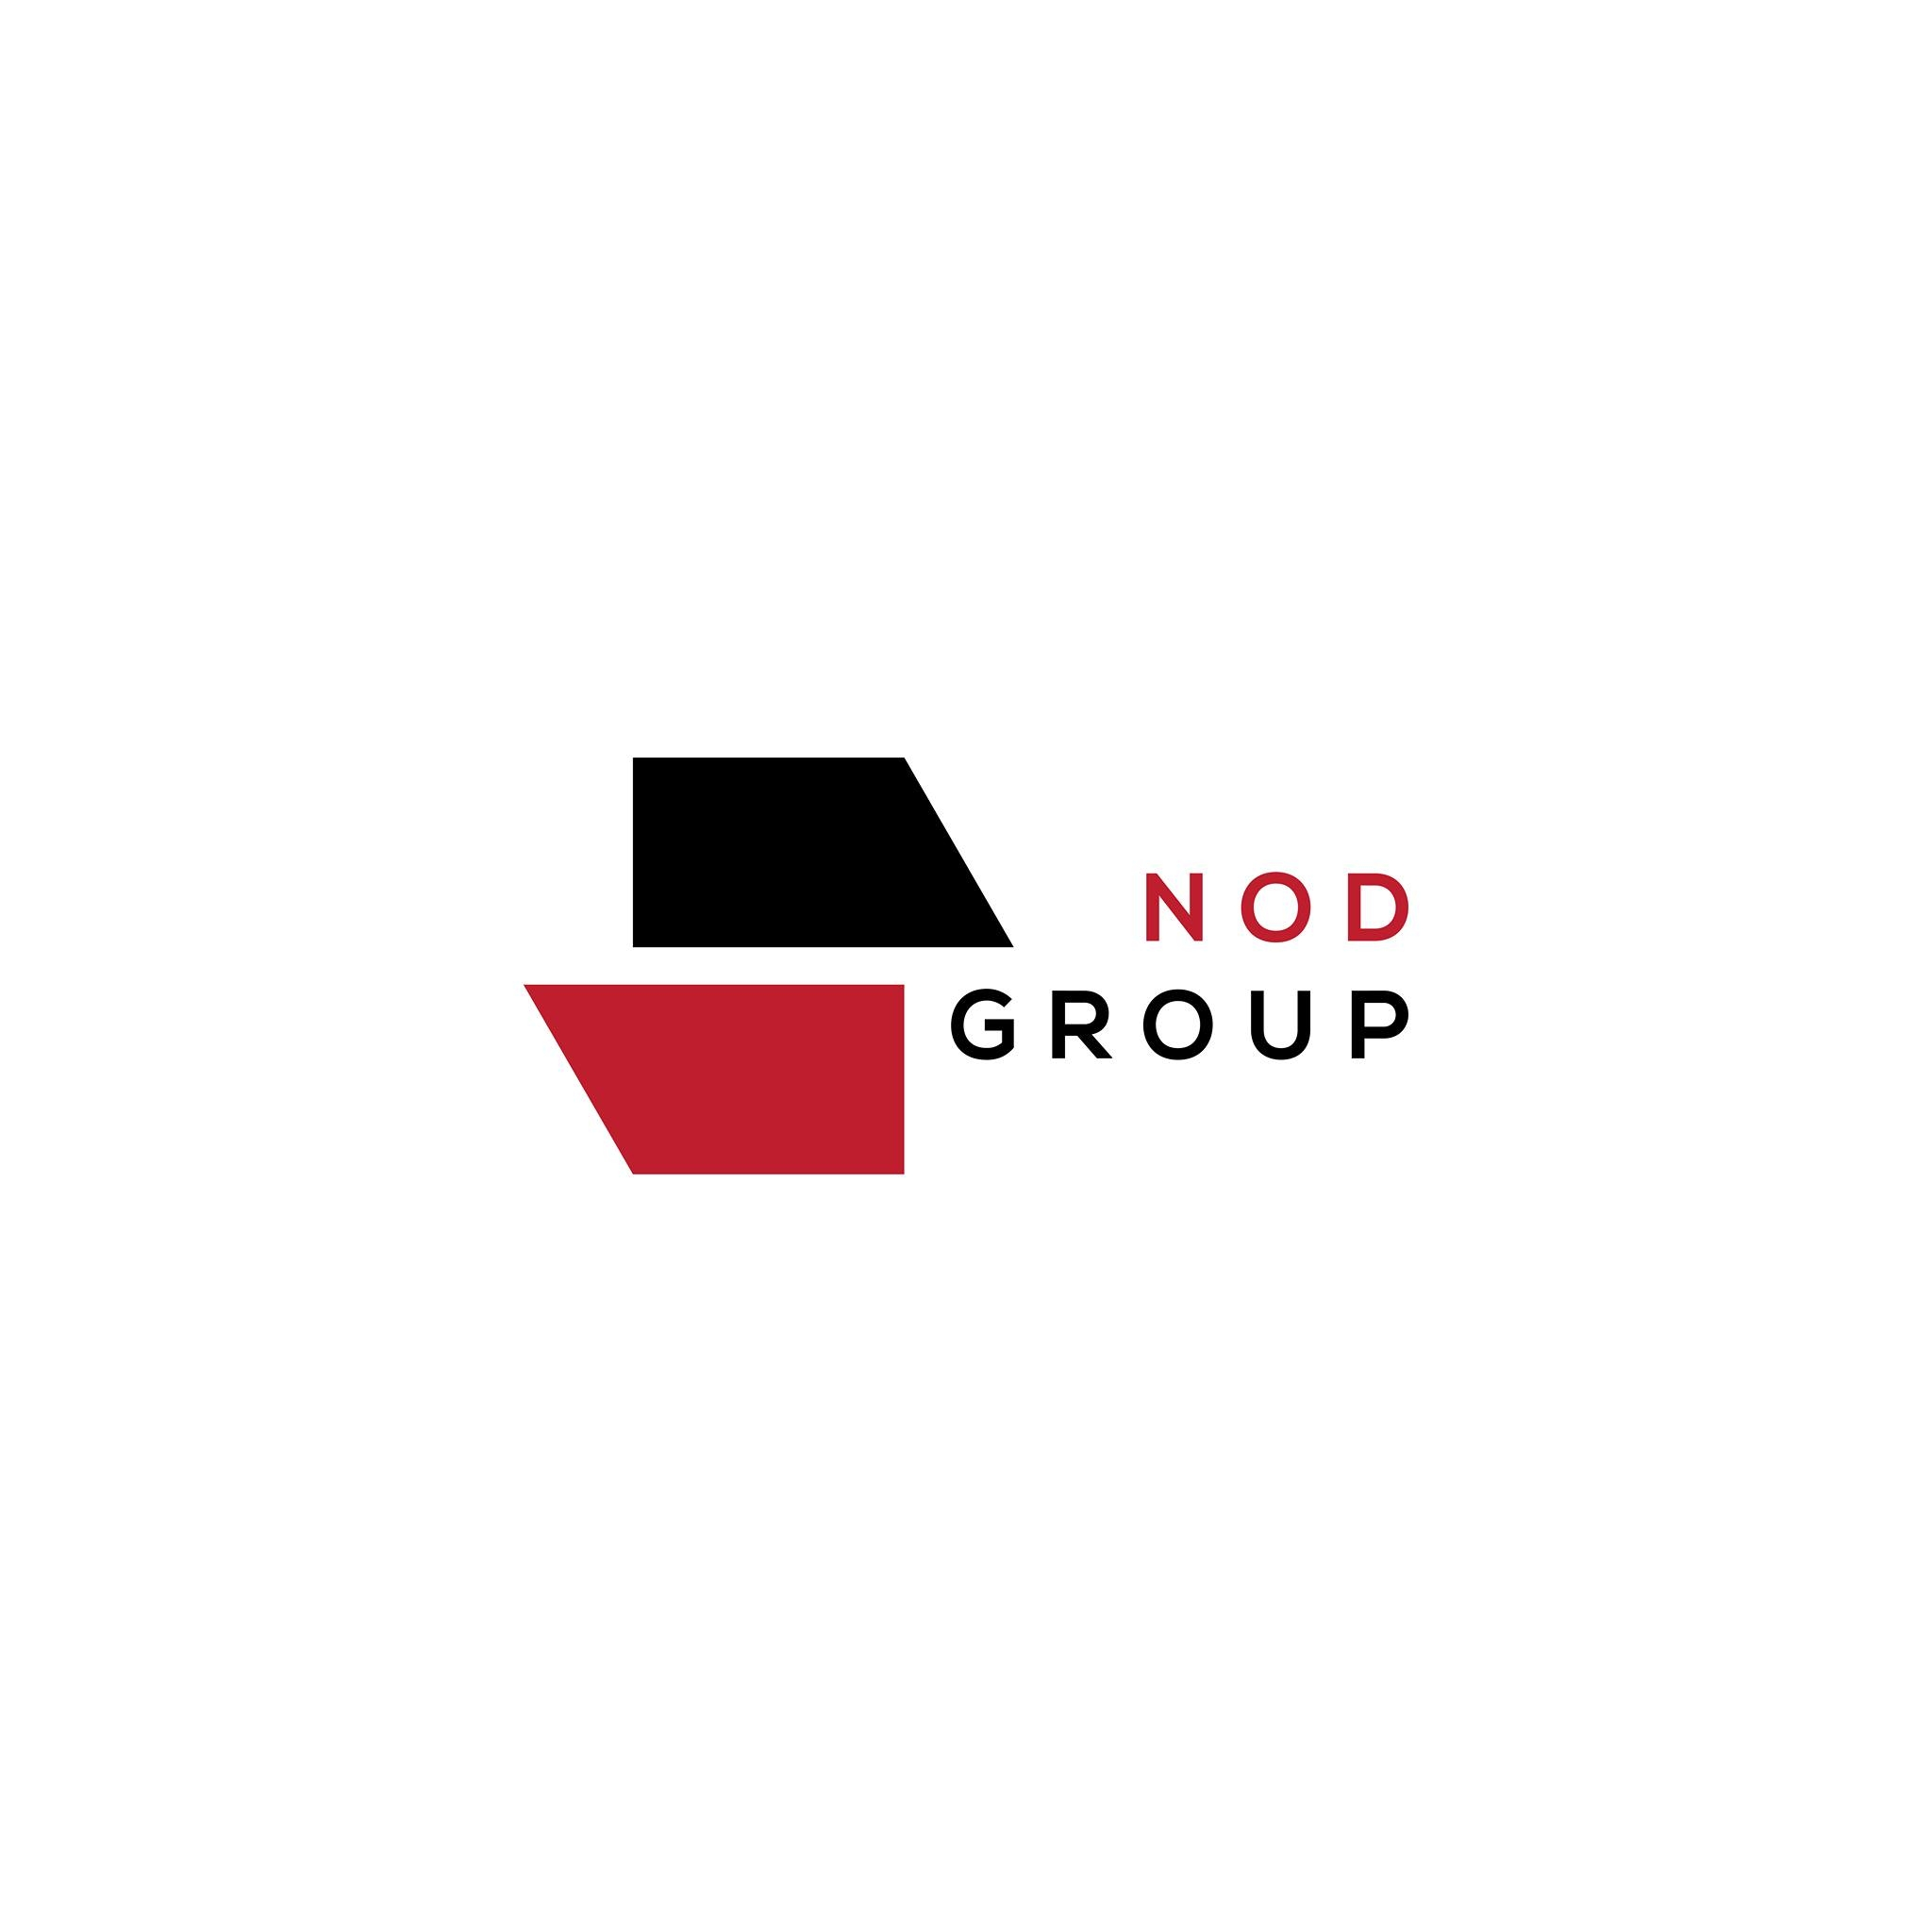 NOD GROUP LLC